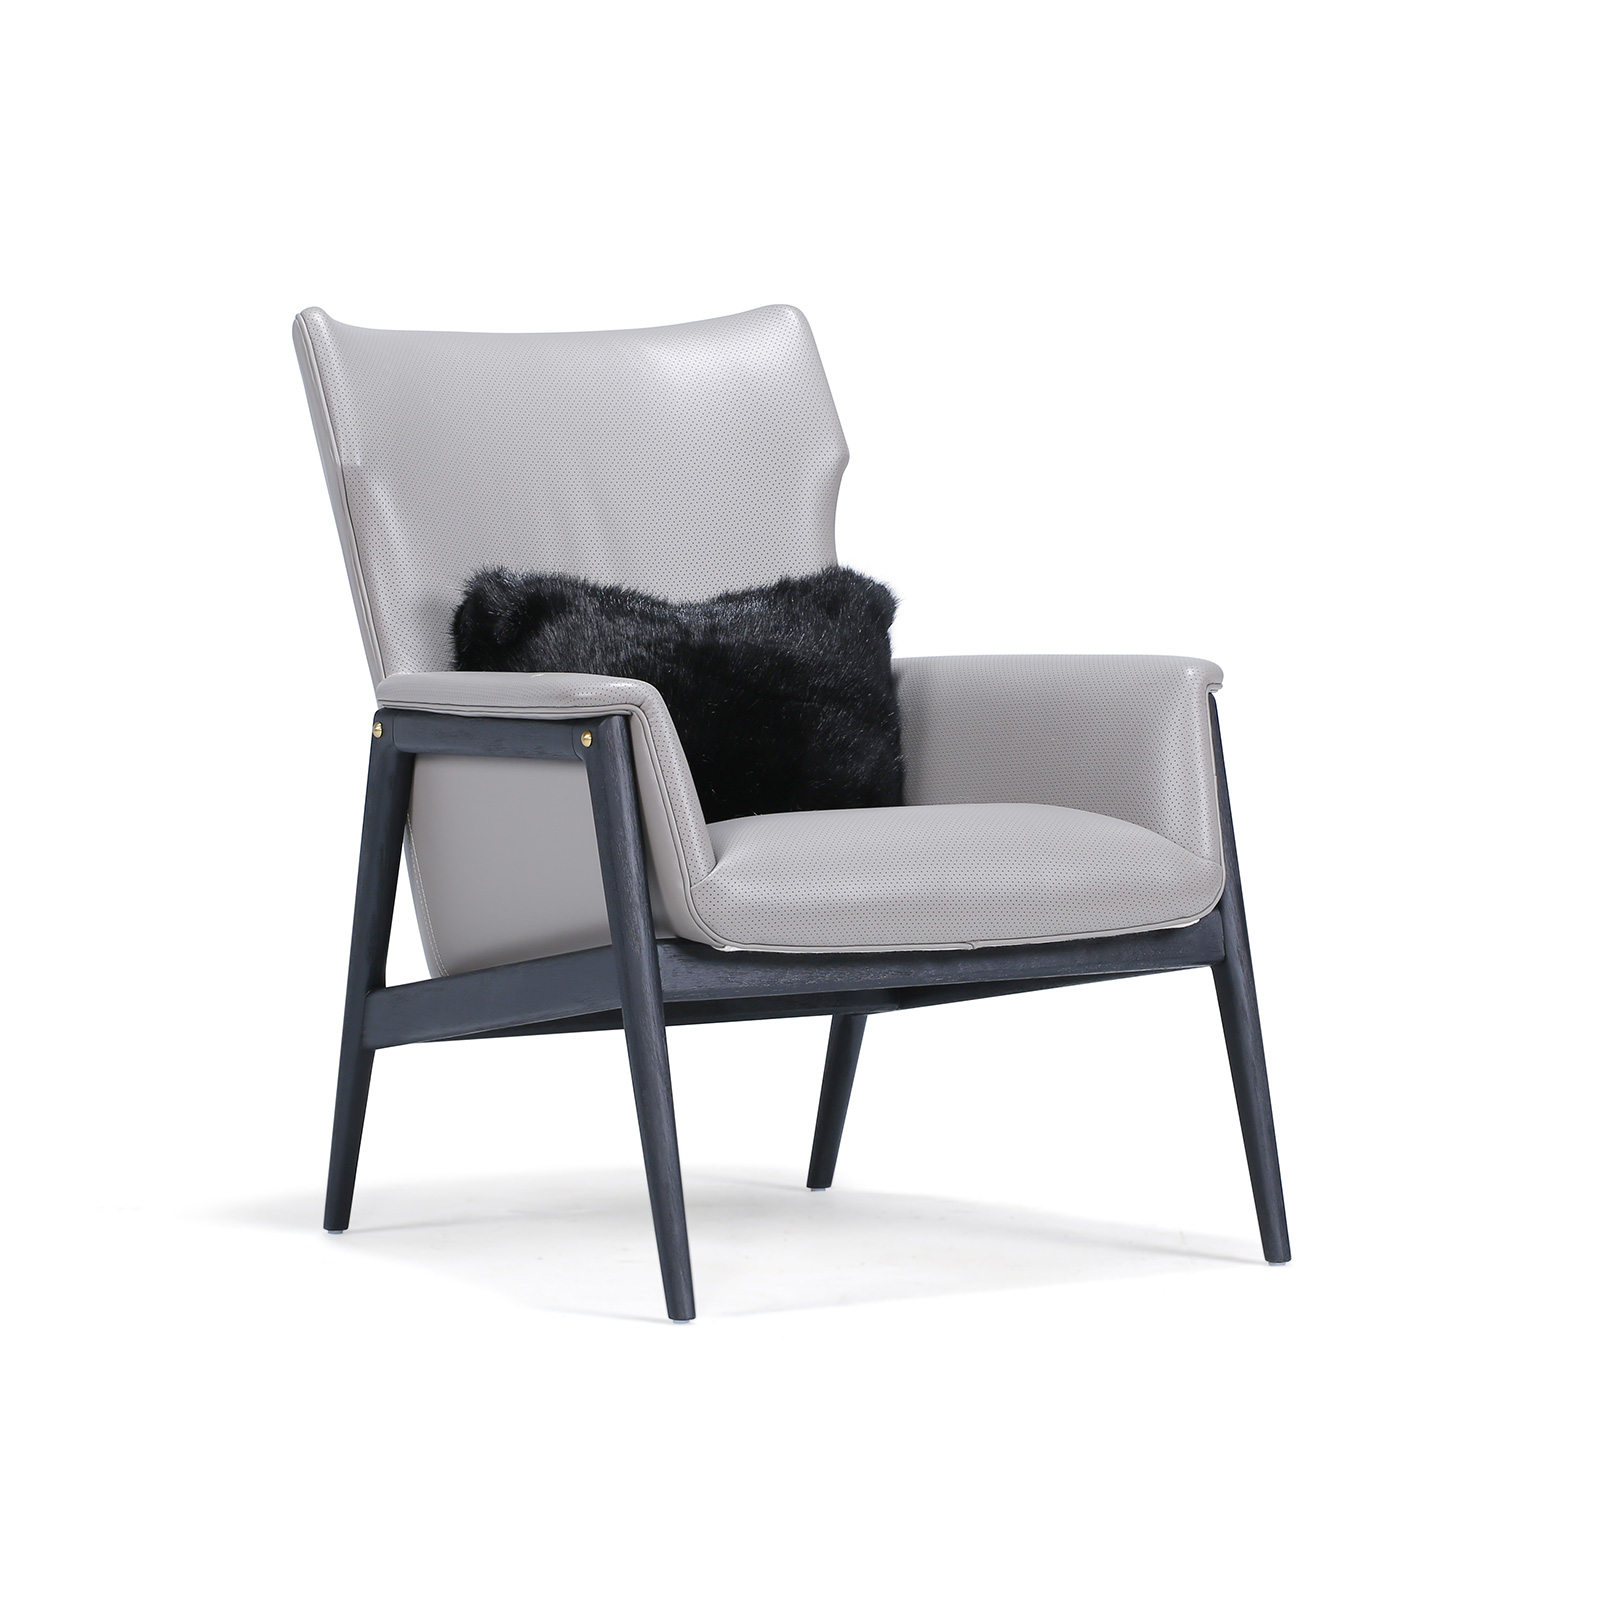 Lfda 017 Comfortable Accent Chairs Leisure Room Furniture